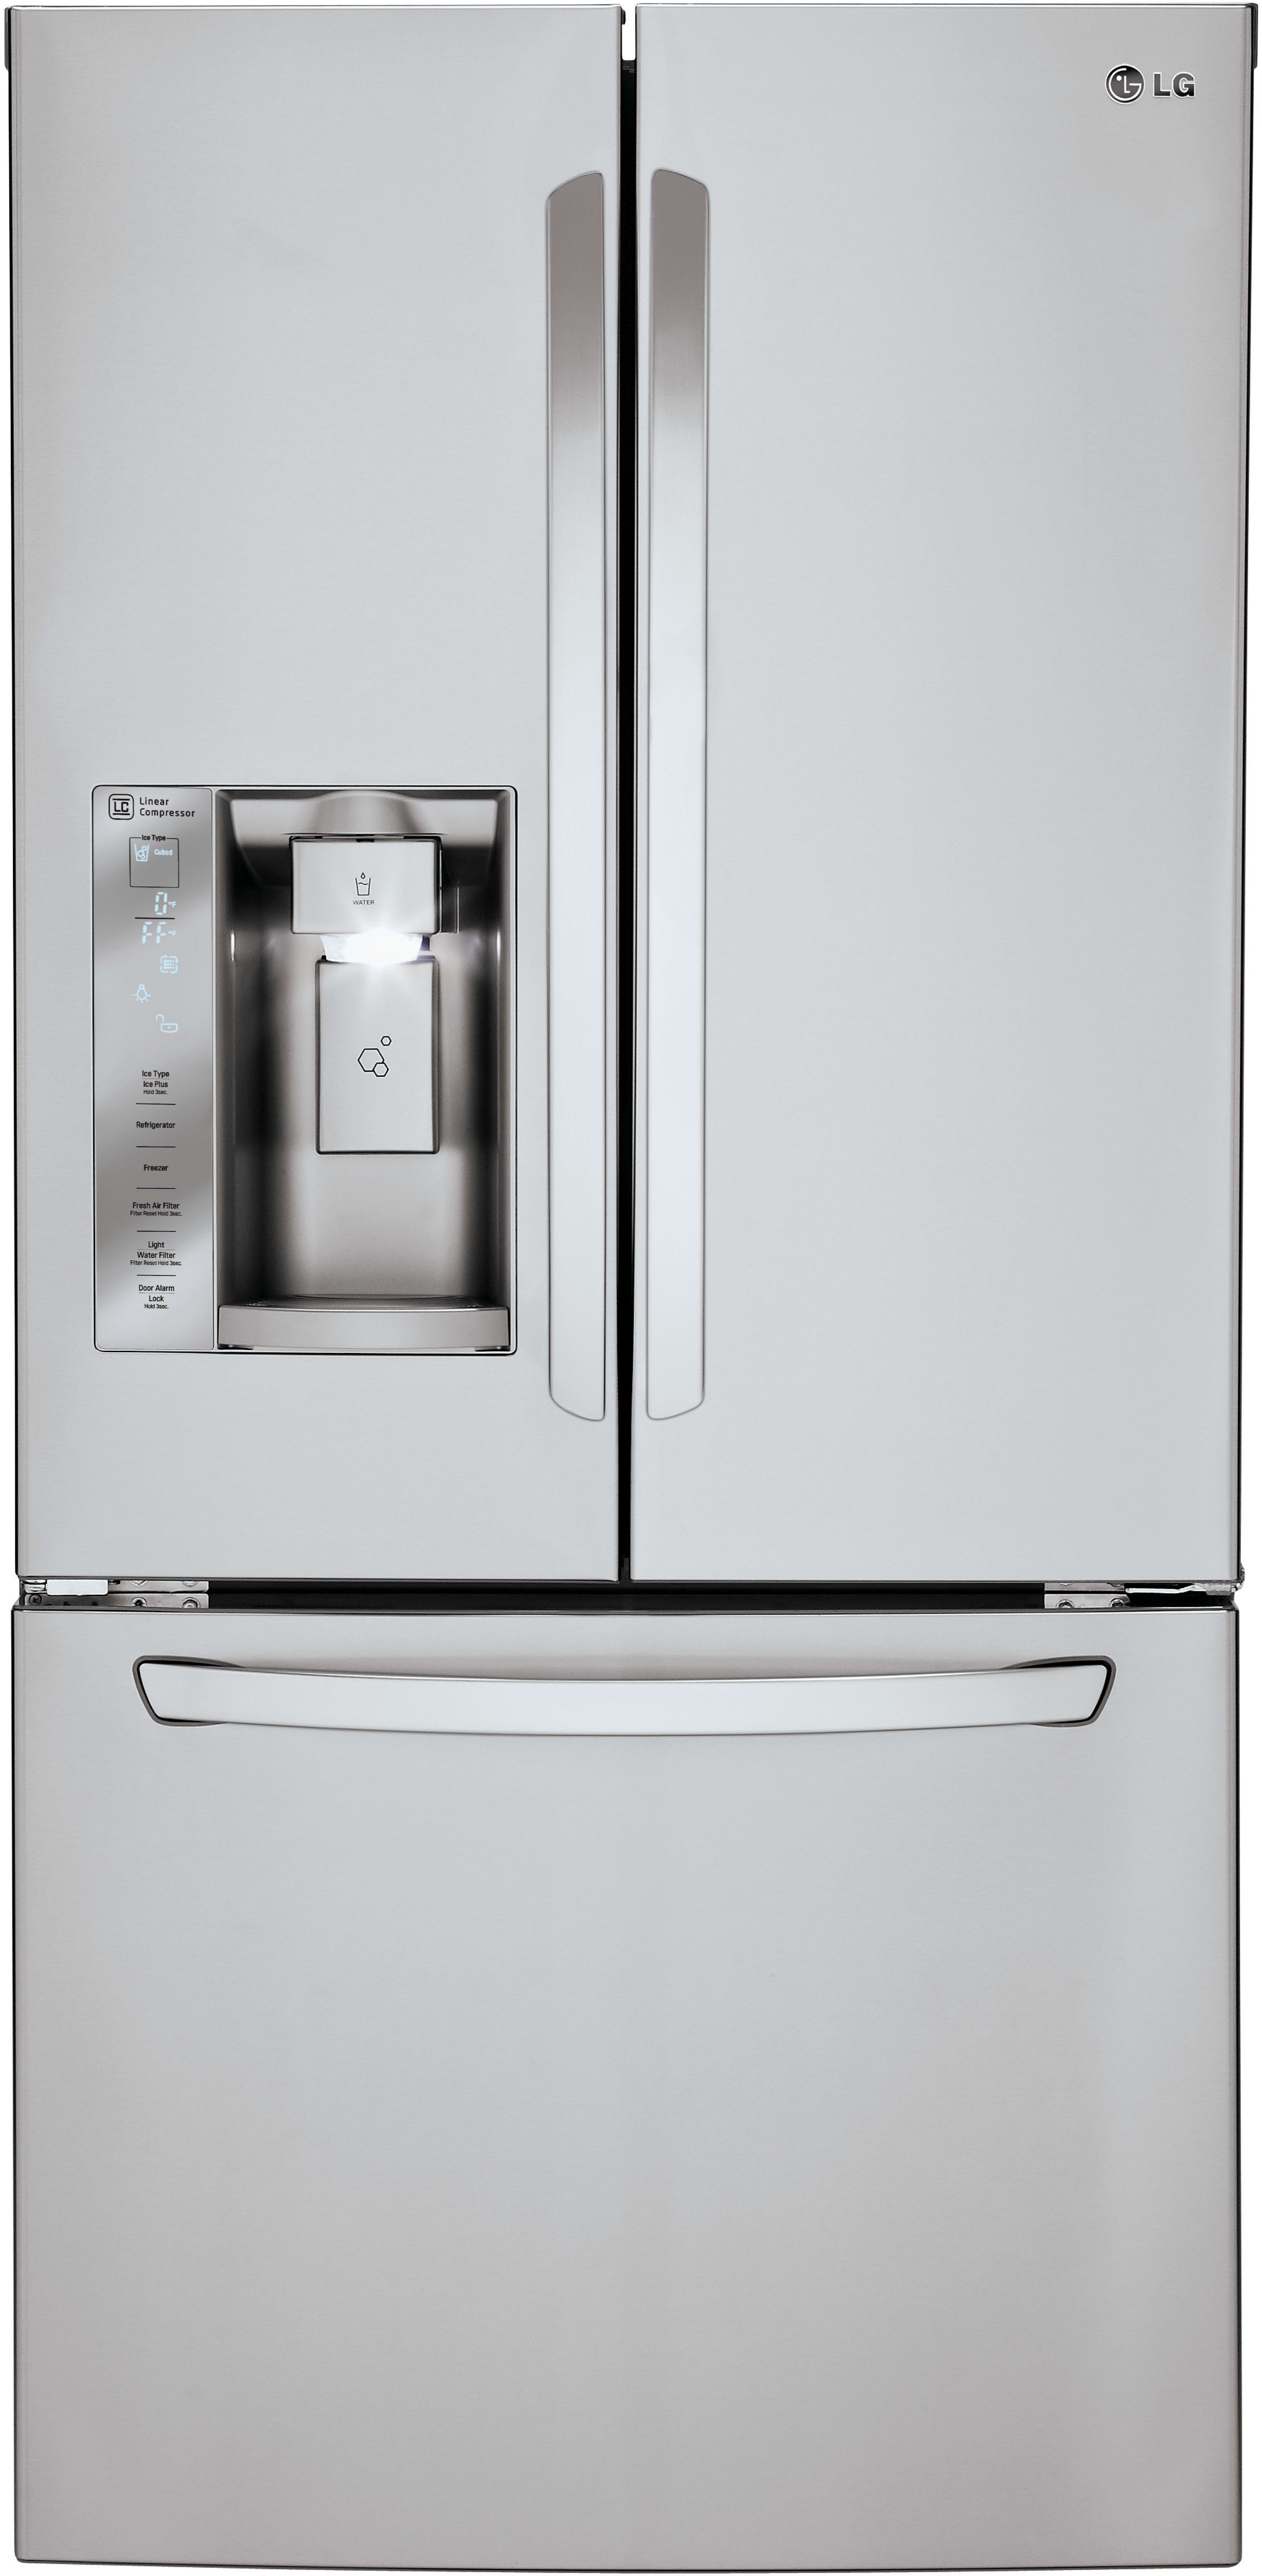 lg two door ice maker instruction manual